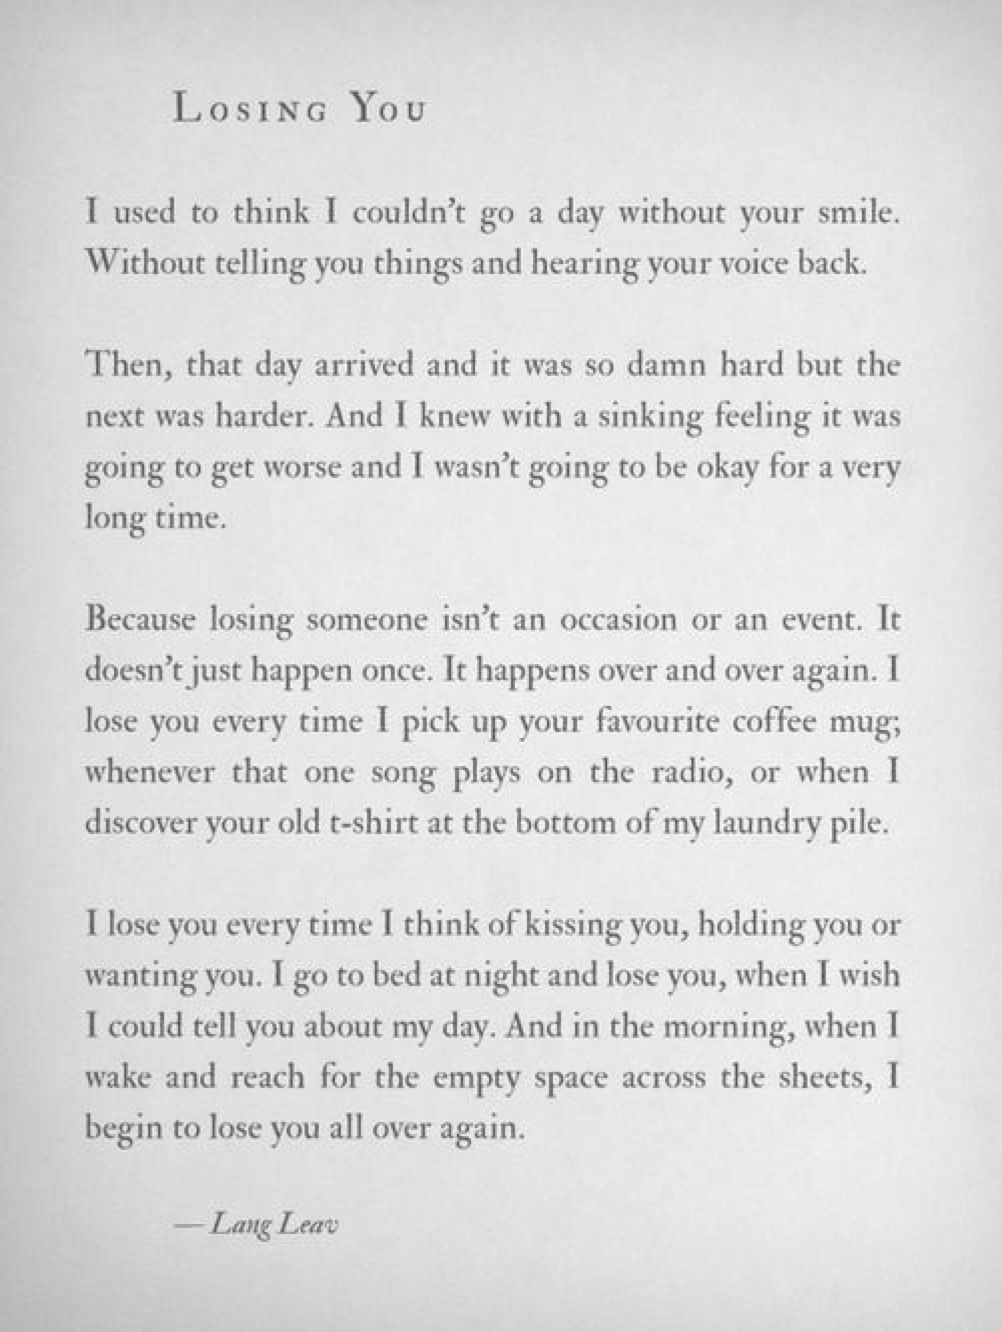 Lost A Loved One Quote Carma's Soulful Meanderings❤ ☀  Lang Leav Losing You